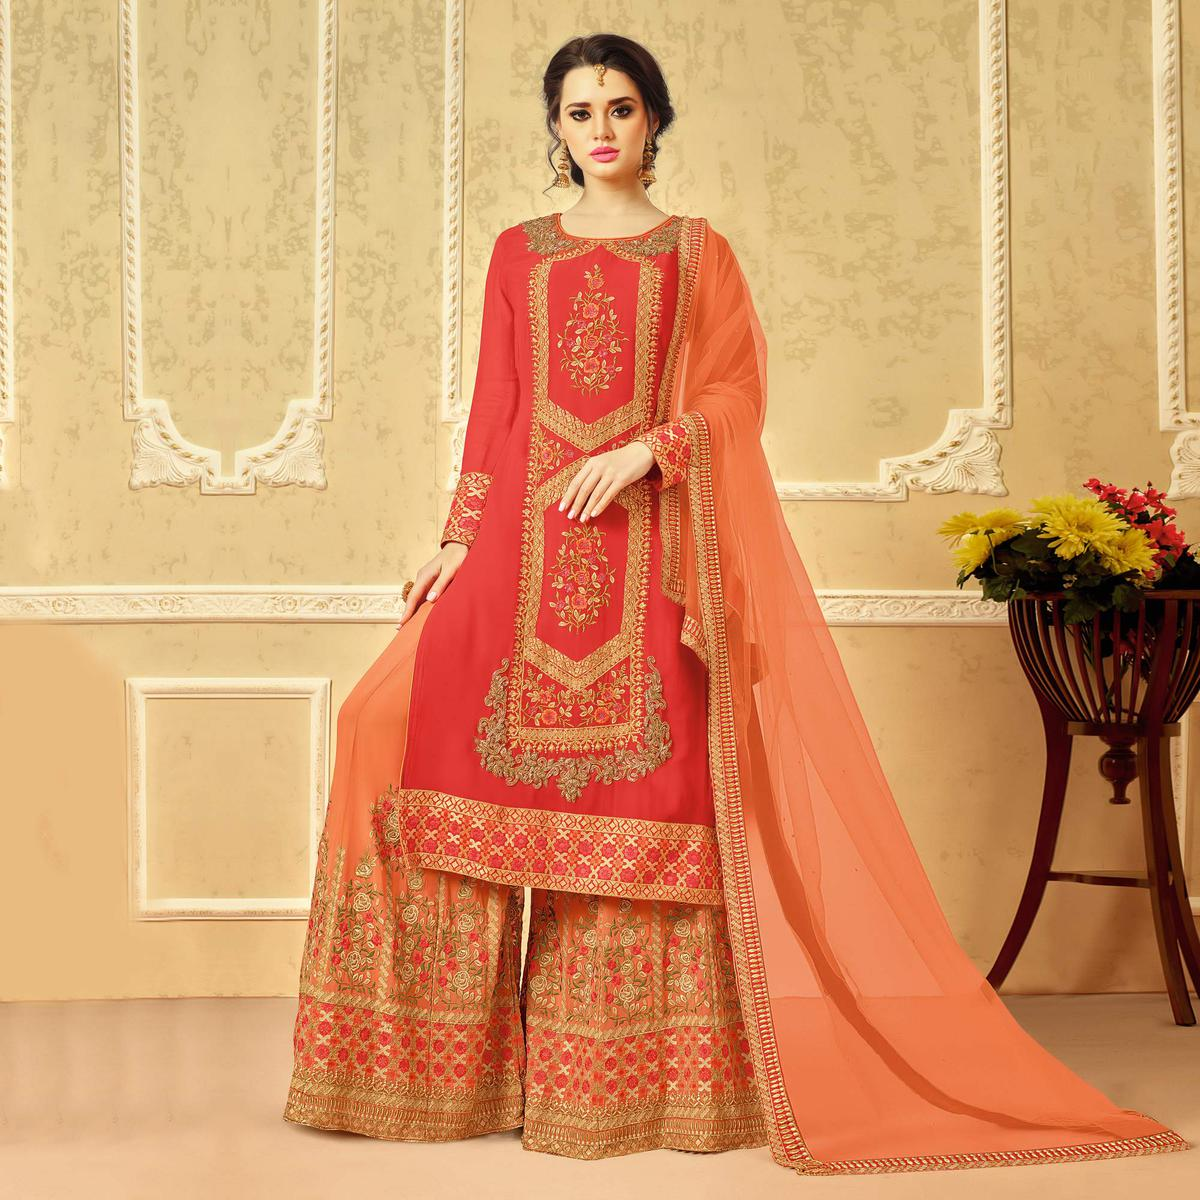 Desirable Pink - Peach Designer Embroidered Faux Georgette Palazzo Suit